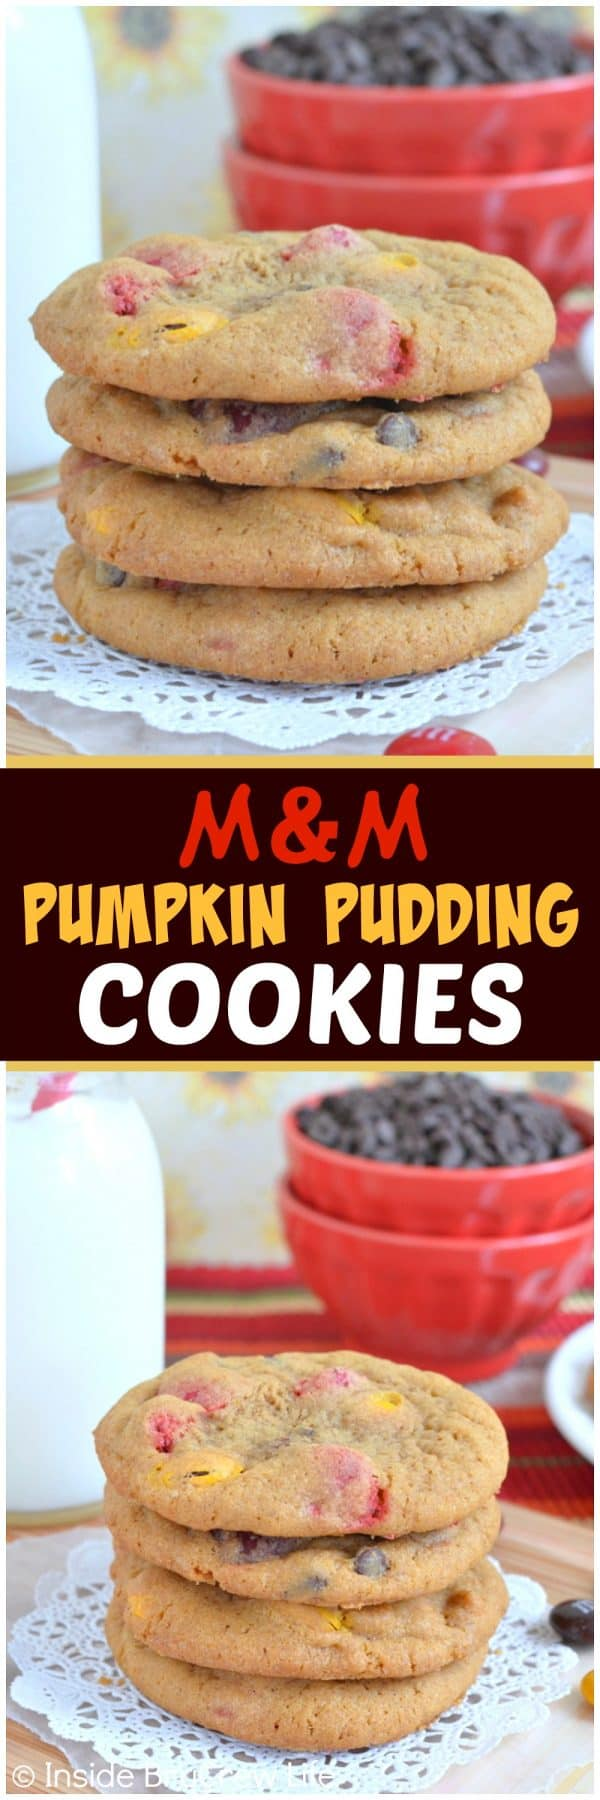 M&M Pumpkin Pudding Cookies - these soft cookies are loaded with chocolate and candies. Great recipe to fill your cookie jar with this fall!